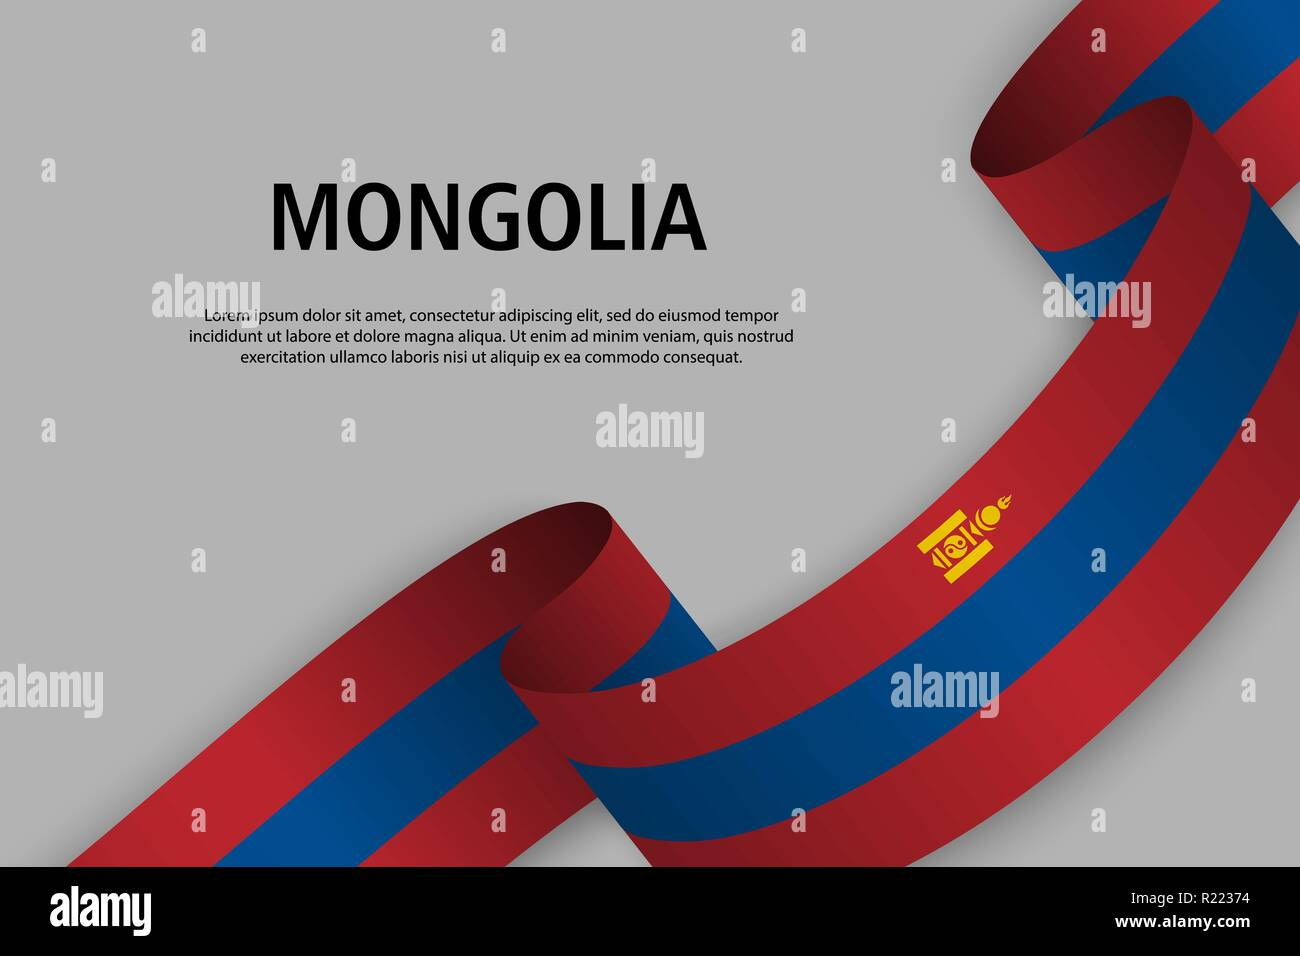 Waving ribbon with Flag of Mongolia, Template for Independence day banner. vector illustration - Stock Vector